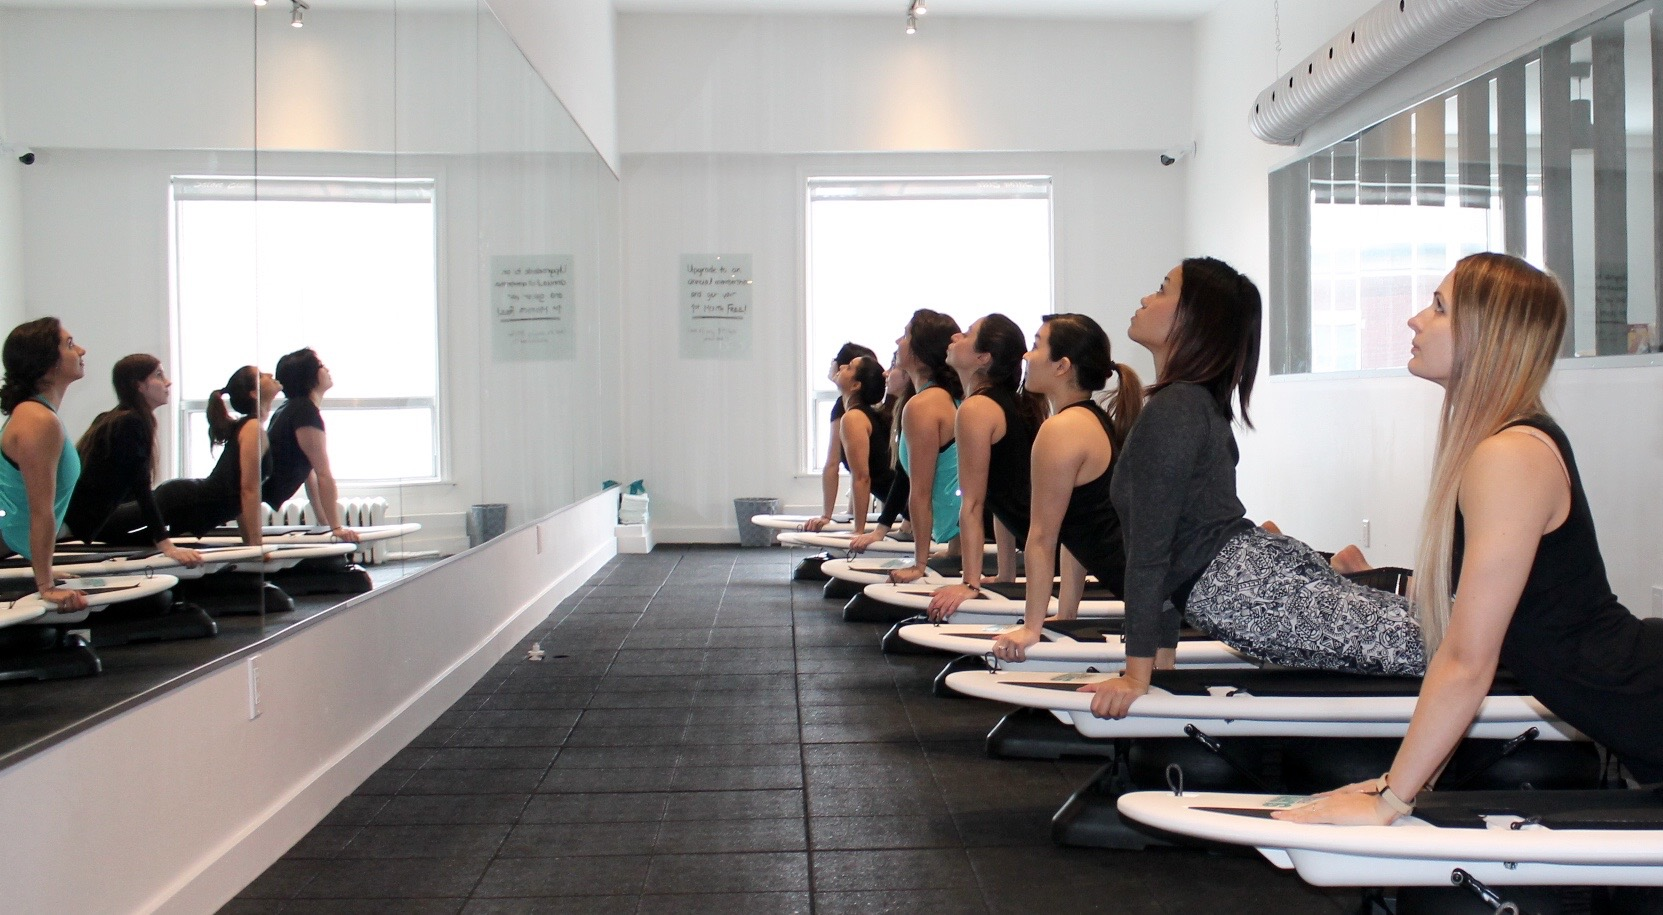 SURFSET class in action | Courtesy of SURFSET Toronto